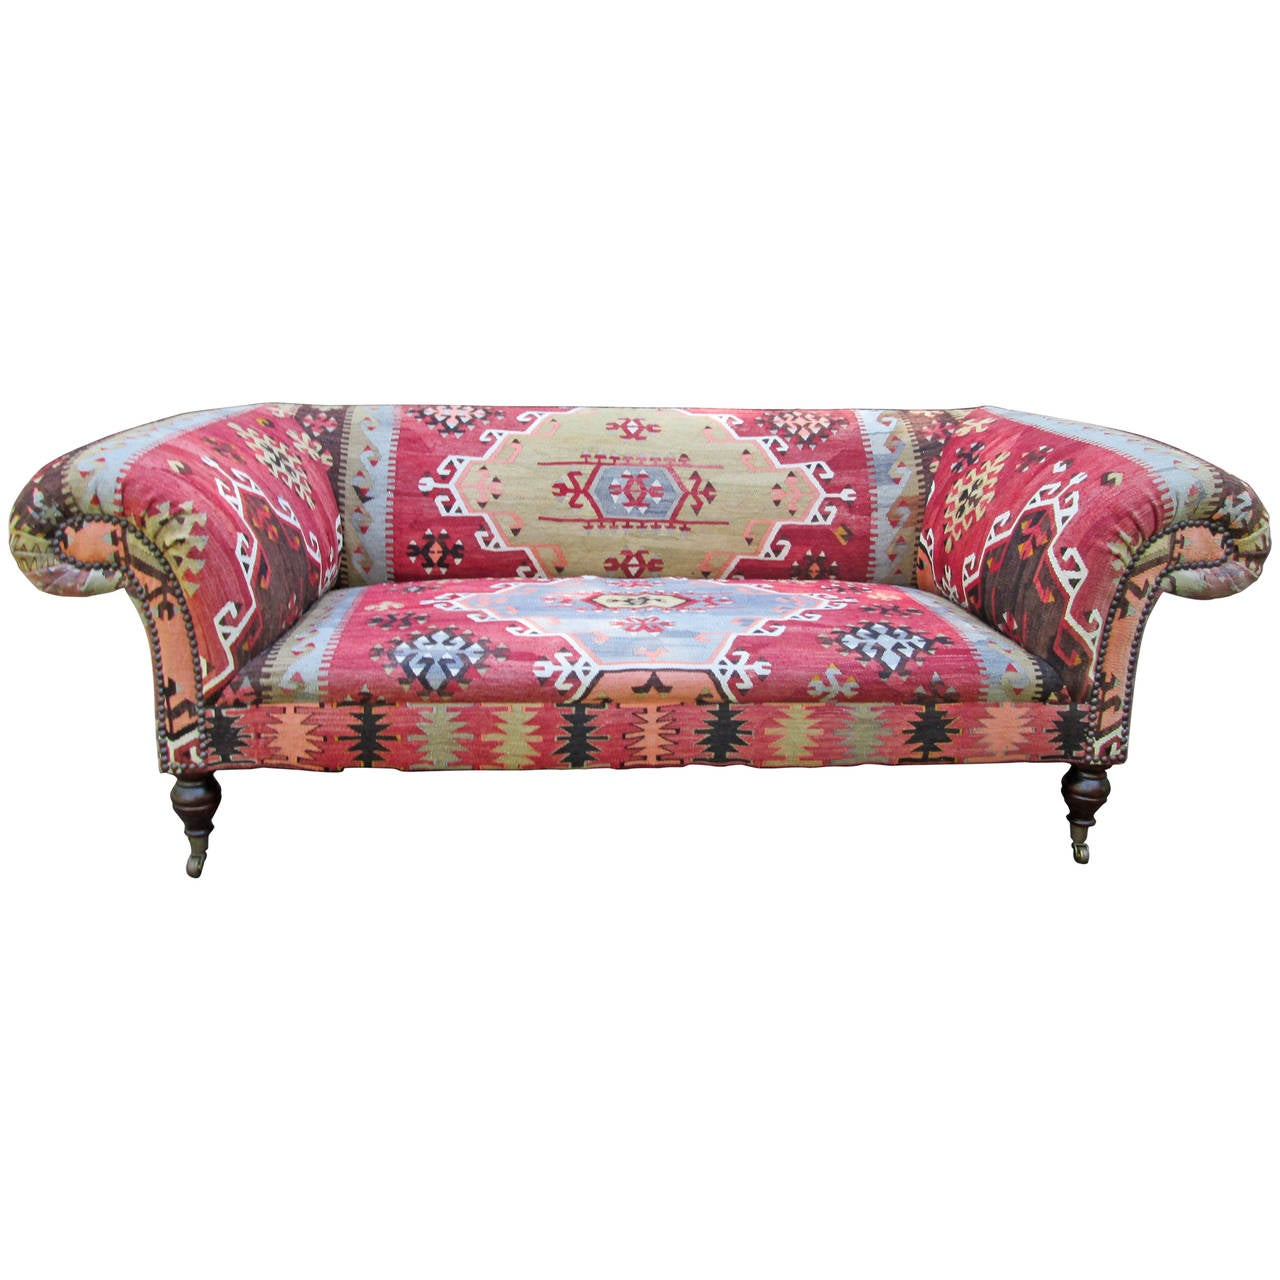 George Smith Quot Early Victorian Quot Sofa In Kilim At 1stdibs